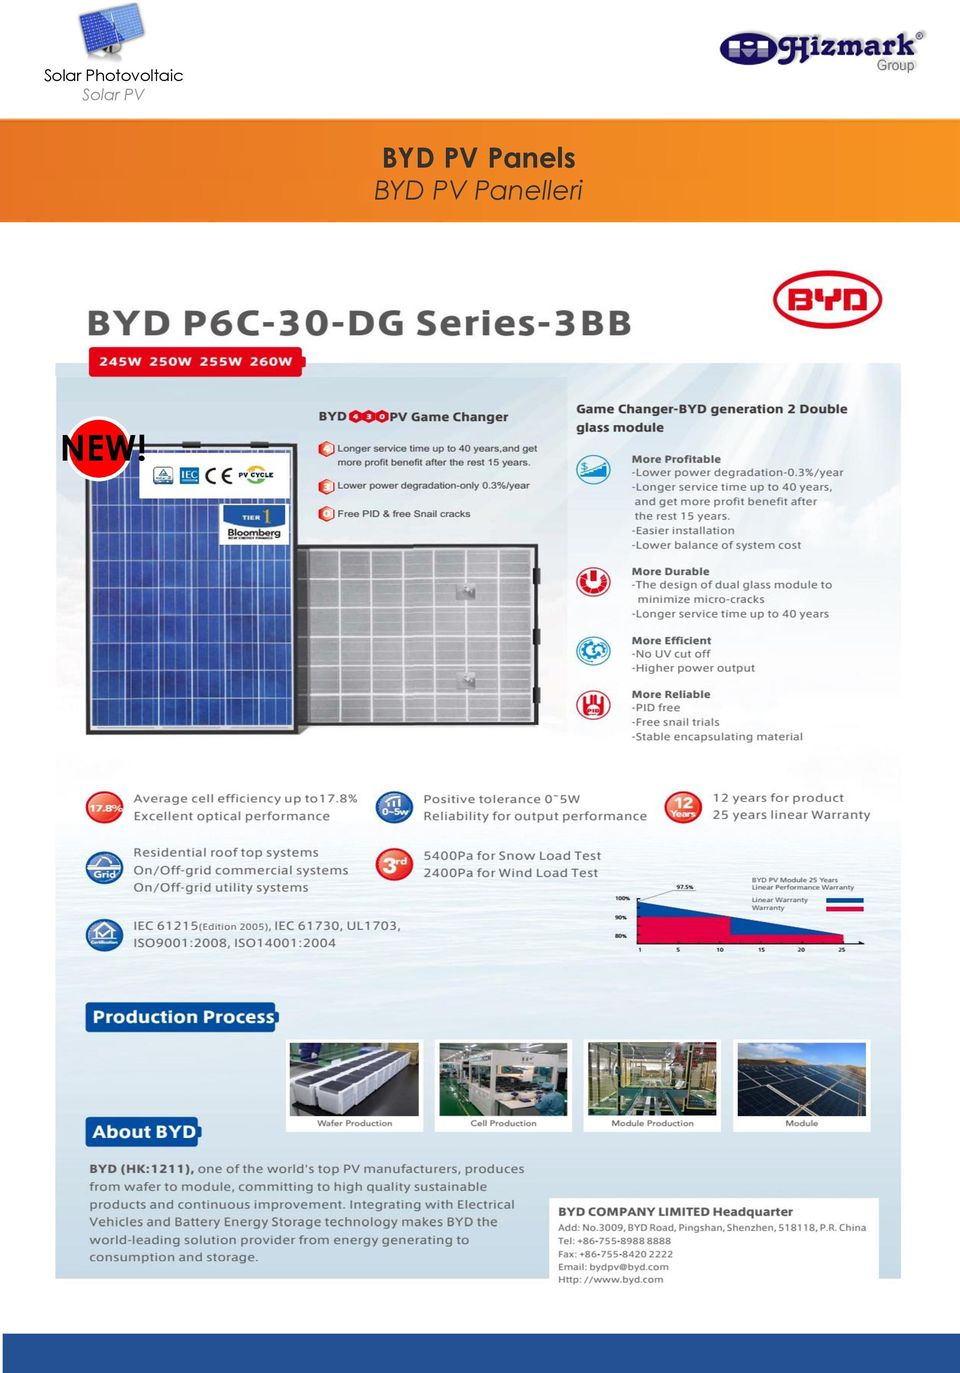 BYD PV Panels